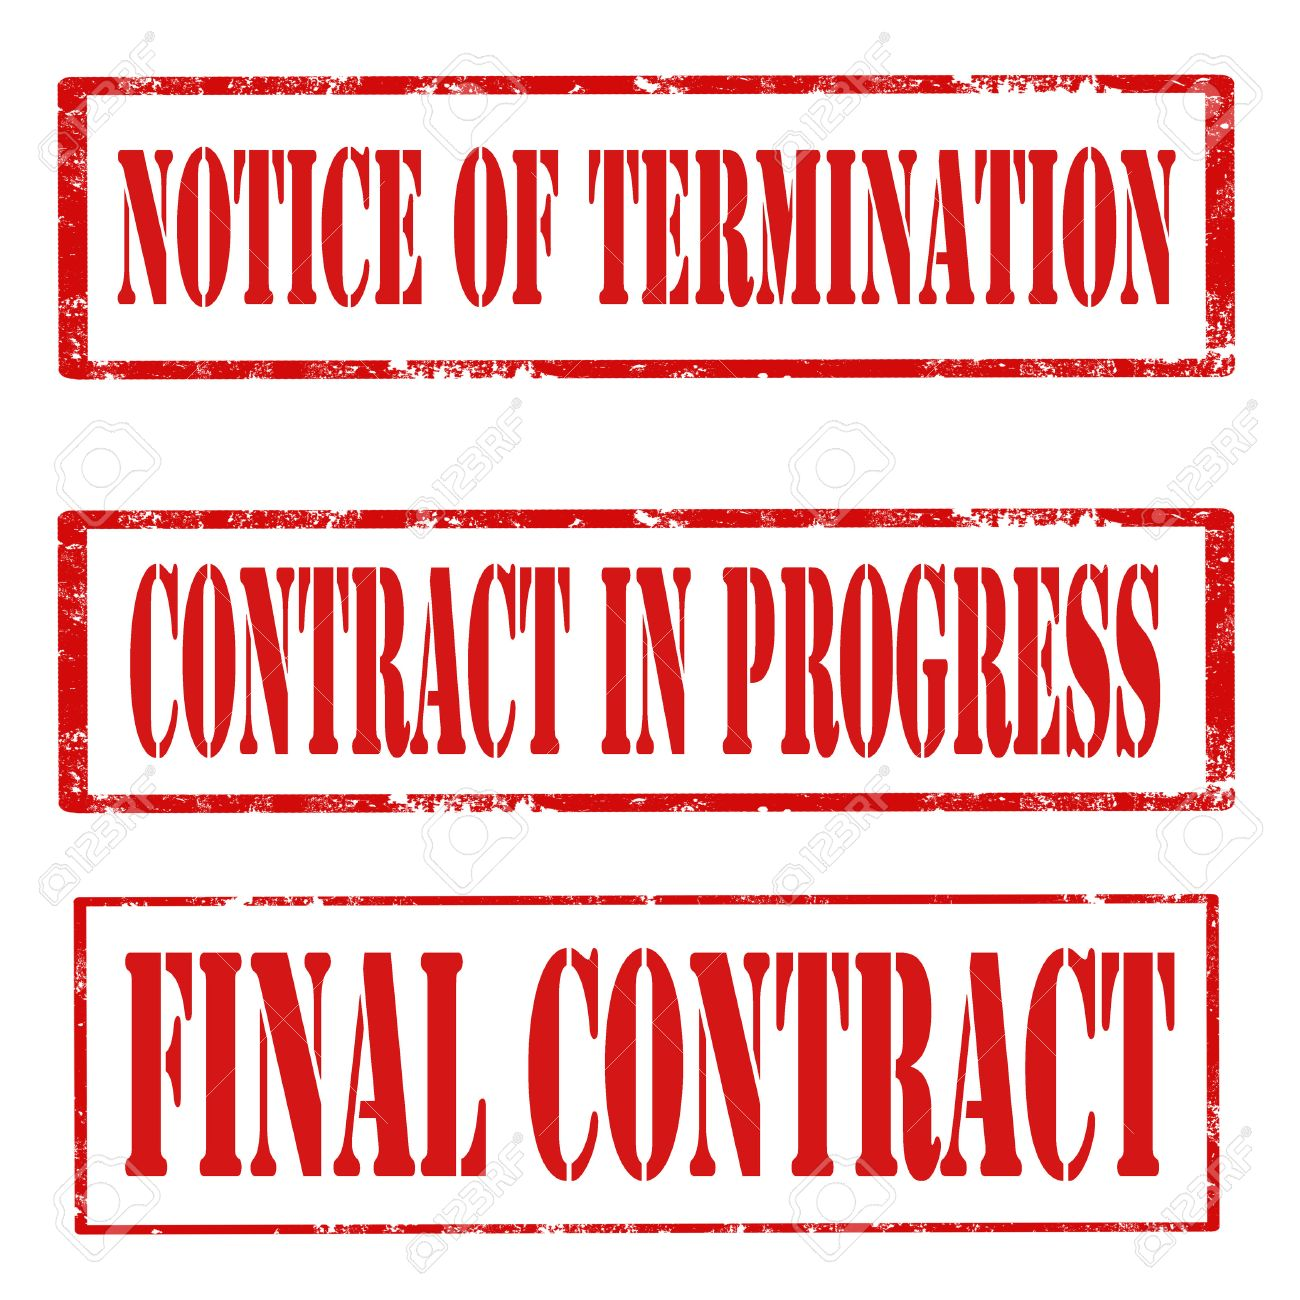 Set Of Grunge Rubber Stamps With Text Notice Of TerminationContract